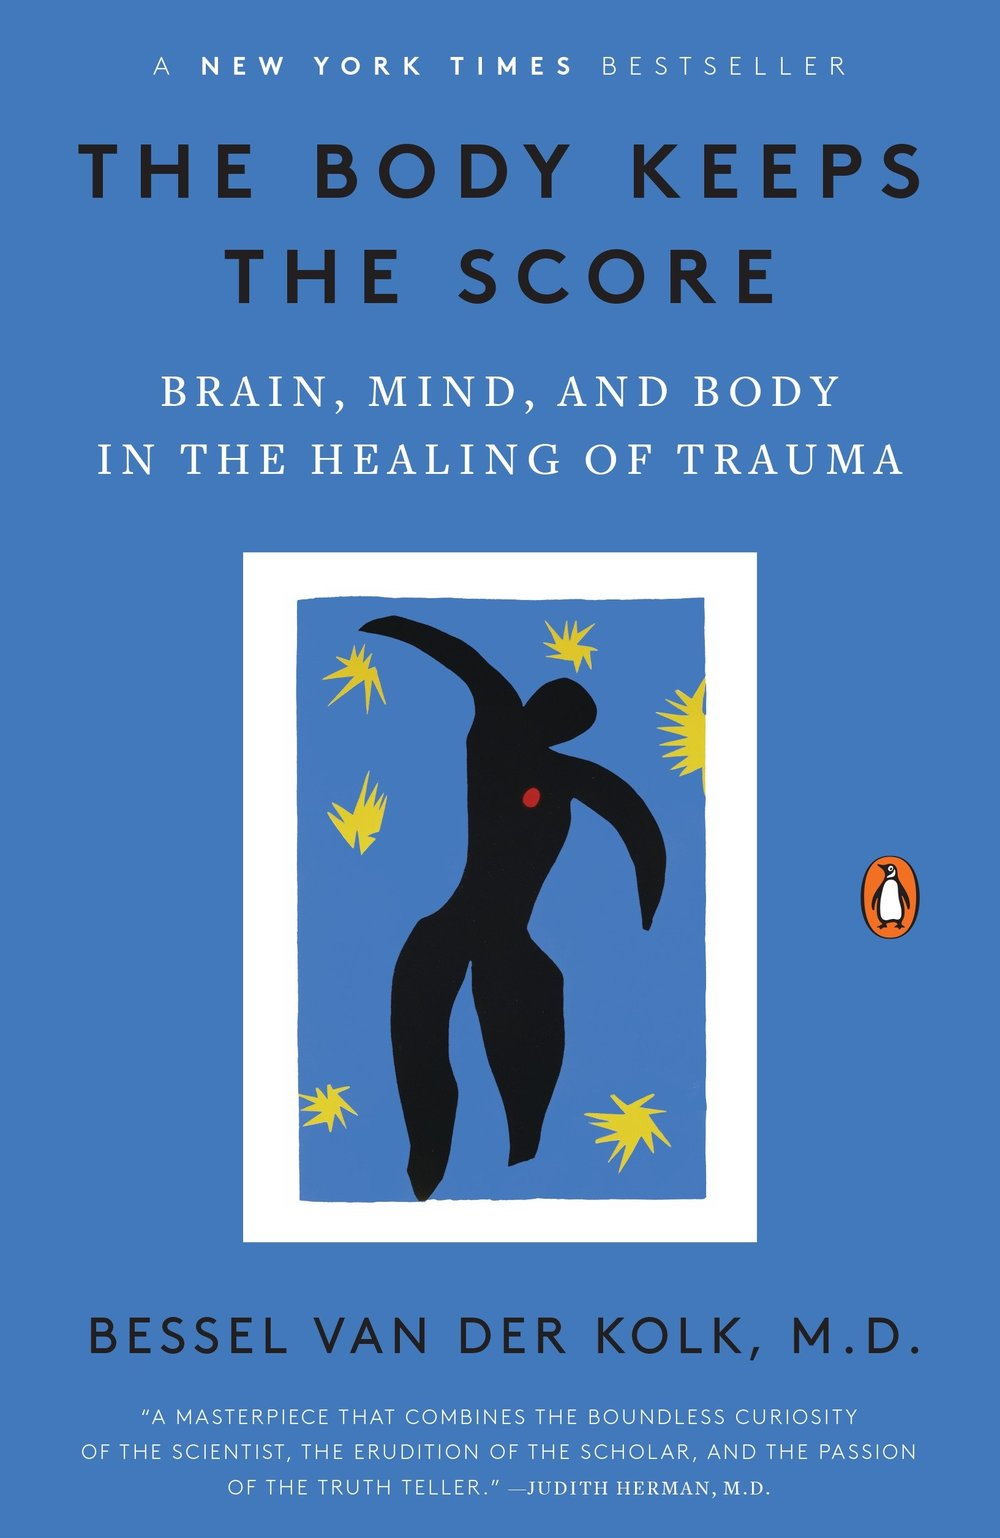 The Body Keeps the Score - Brain, Mind, and Body in the Healing of Trauma